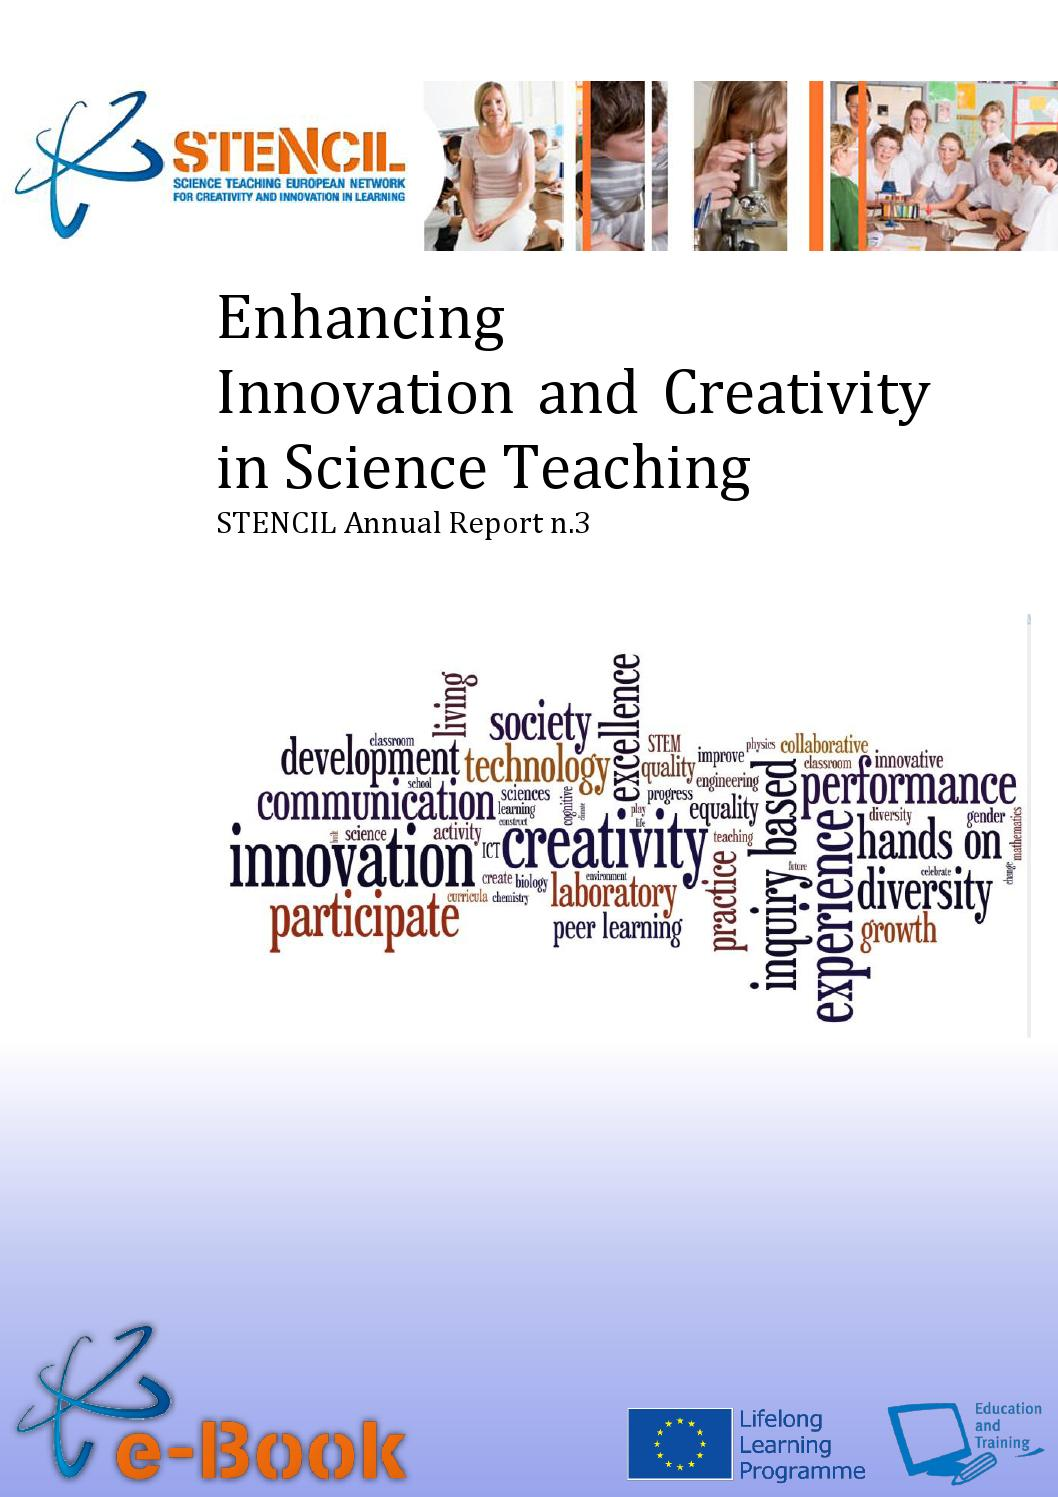 Enhancing Innovation and Creativity in Science Teaching (n°3) by